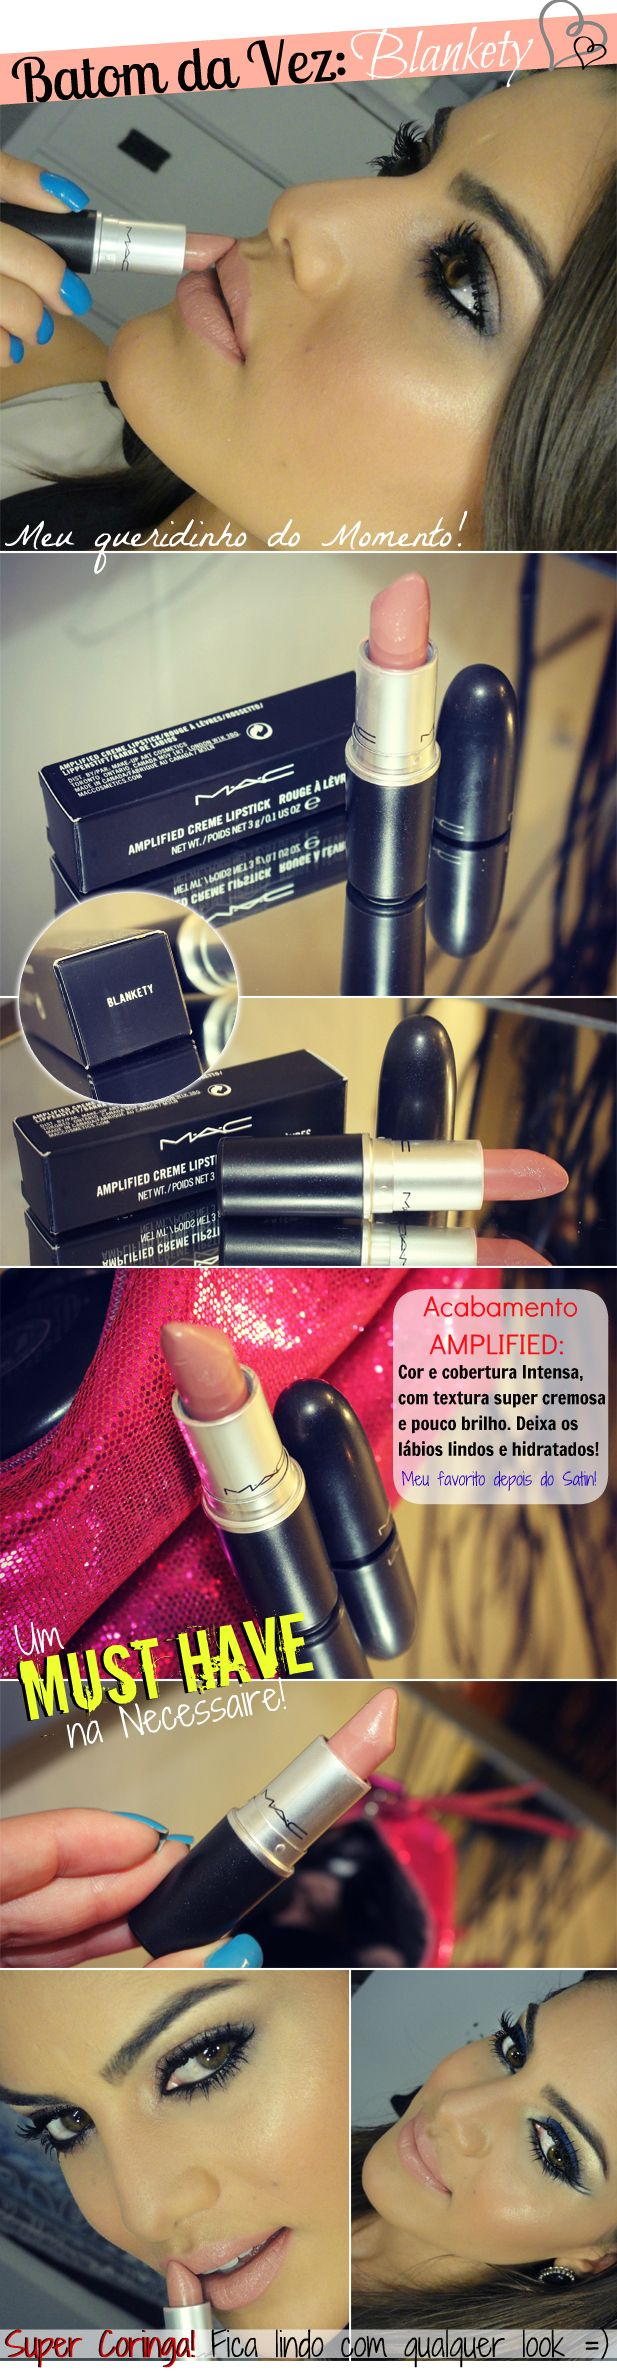 Blankety MAC (amplified) AGAIN! see why it's my fave?!